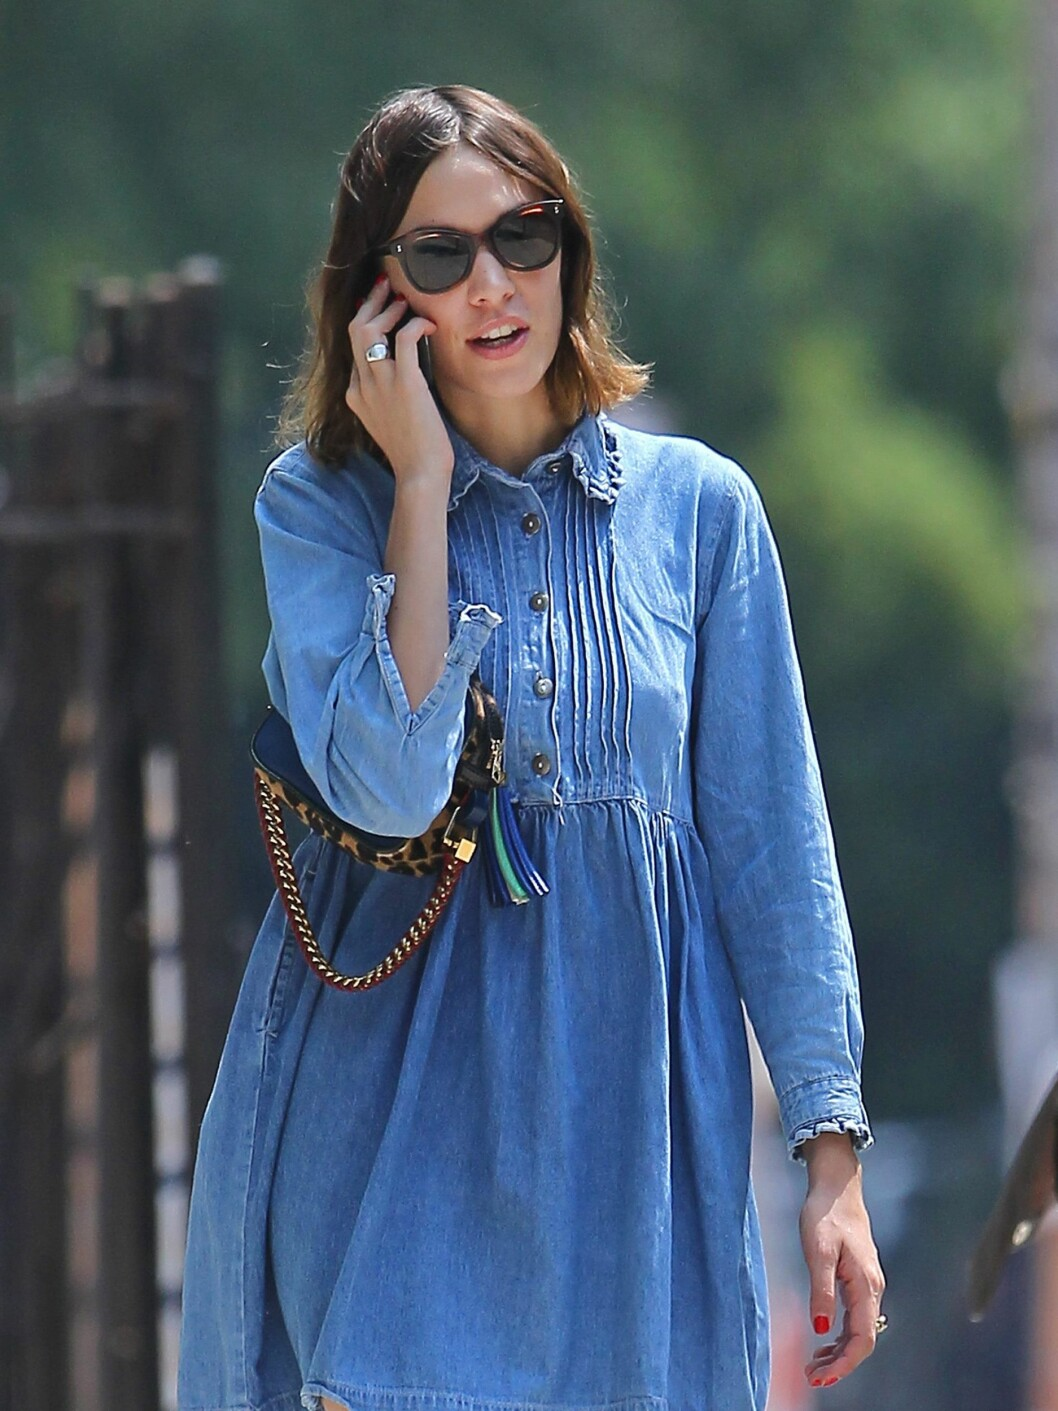 Alexa Chung takes a walk around the East Village while chatting on her cellphone.  Pictured: Alexa Chung  Ref: SPL303722  190811   Picture by: Bart/Splash News  Splash News and Pictures Los Angeles:310-821-2666 New York:212-619-2666 London:870-934-2666 photodesk@splashnews.com  *** Local Caption *** World Rights Foto: All Over Press